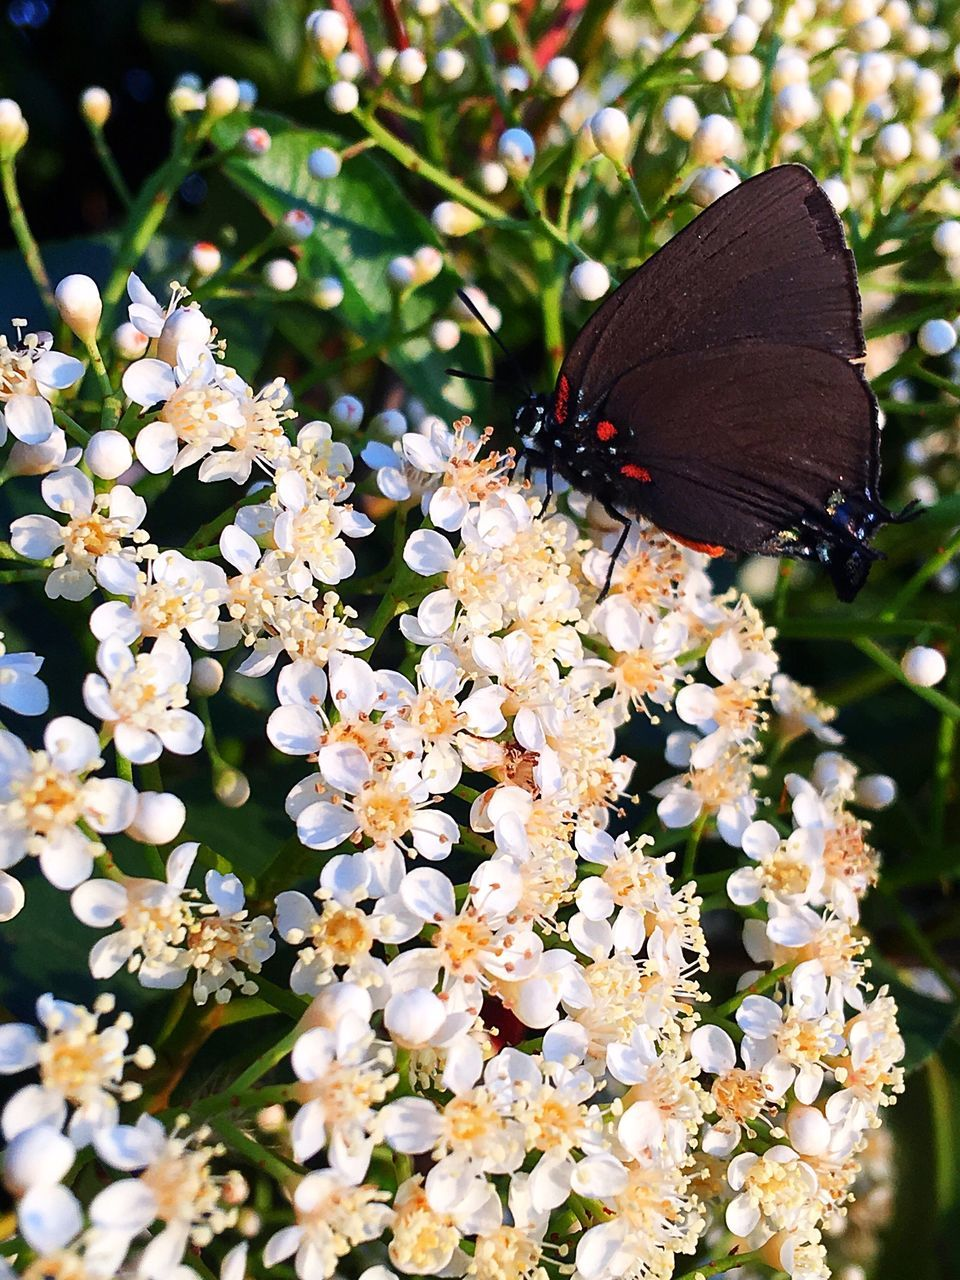 one animal, animal themes, animals in the wild, insect, butterfly - insect, nature, fragility, flower, no people, day, beauty in nature, animal wildlife, outdoors, plant, freshness, close-up, growth, pollination, flower head